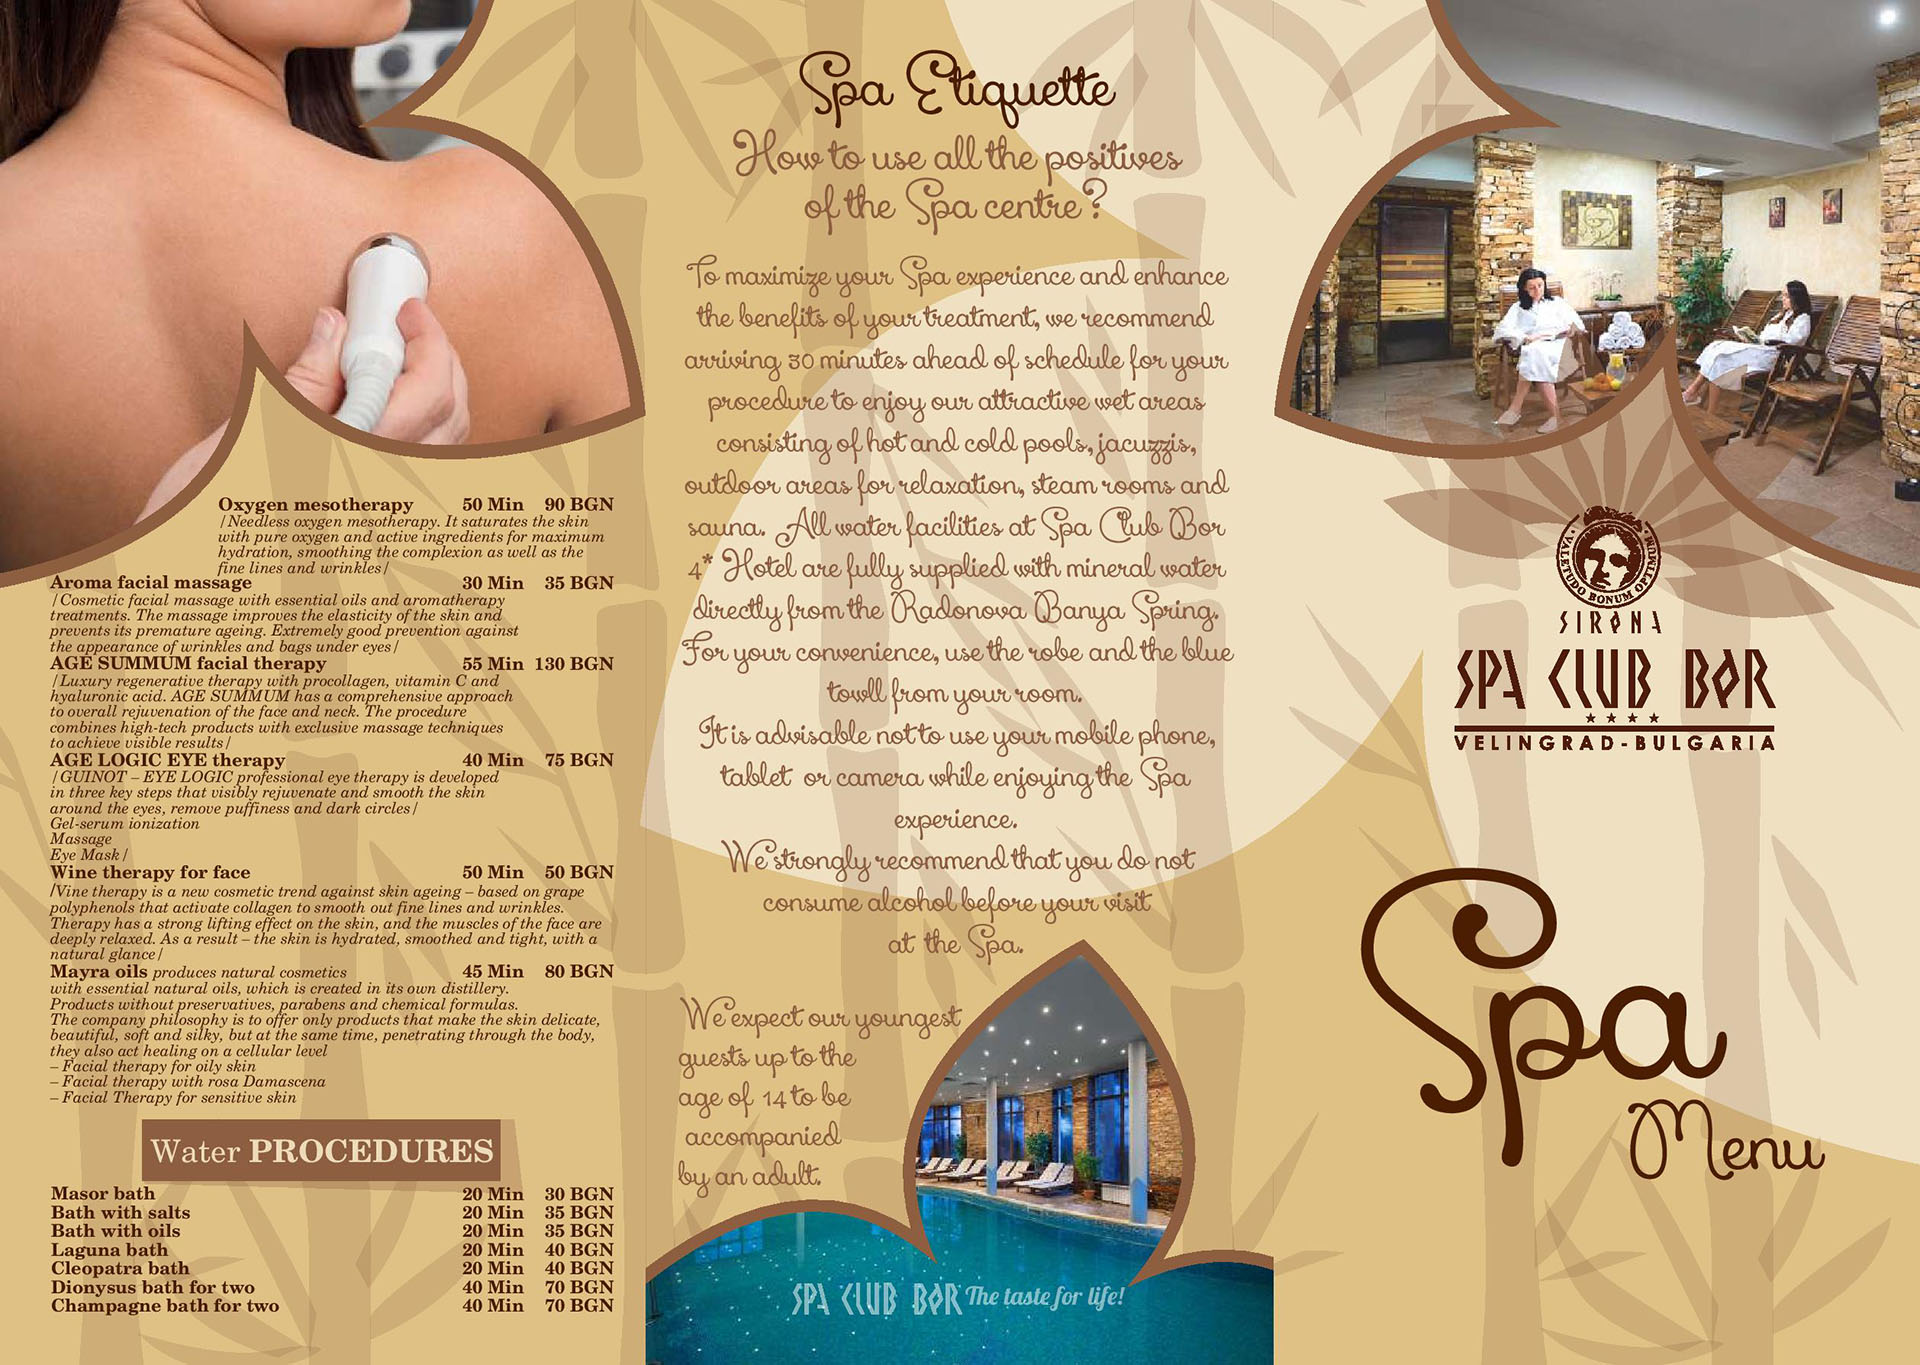 SPA-procedures-at-Hotel-Spa-Club-Bor-Velingrad-water-procedures-massages-body-therapies-face-therapies